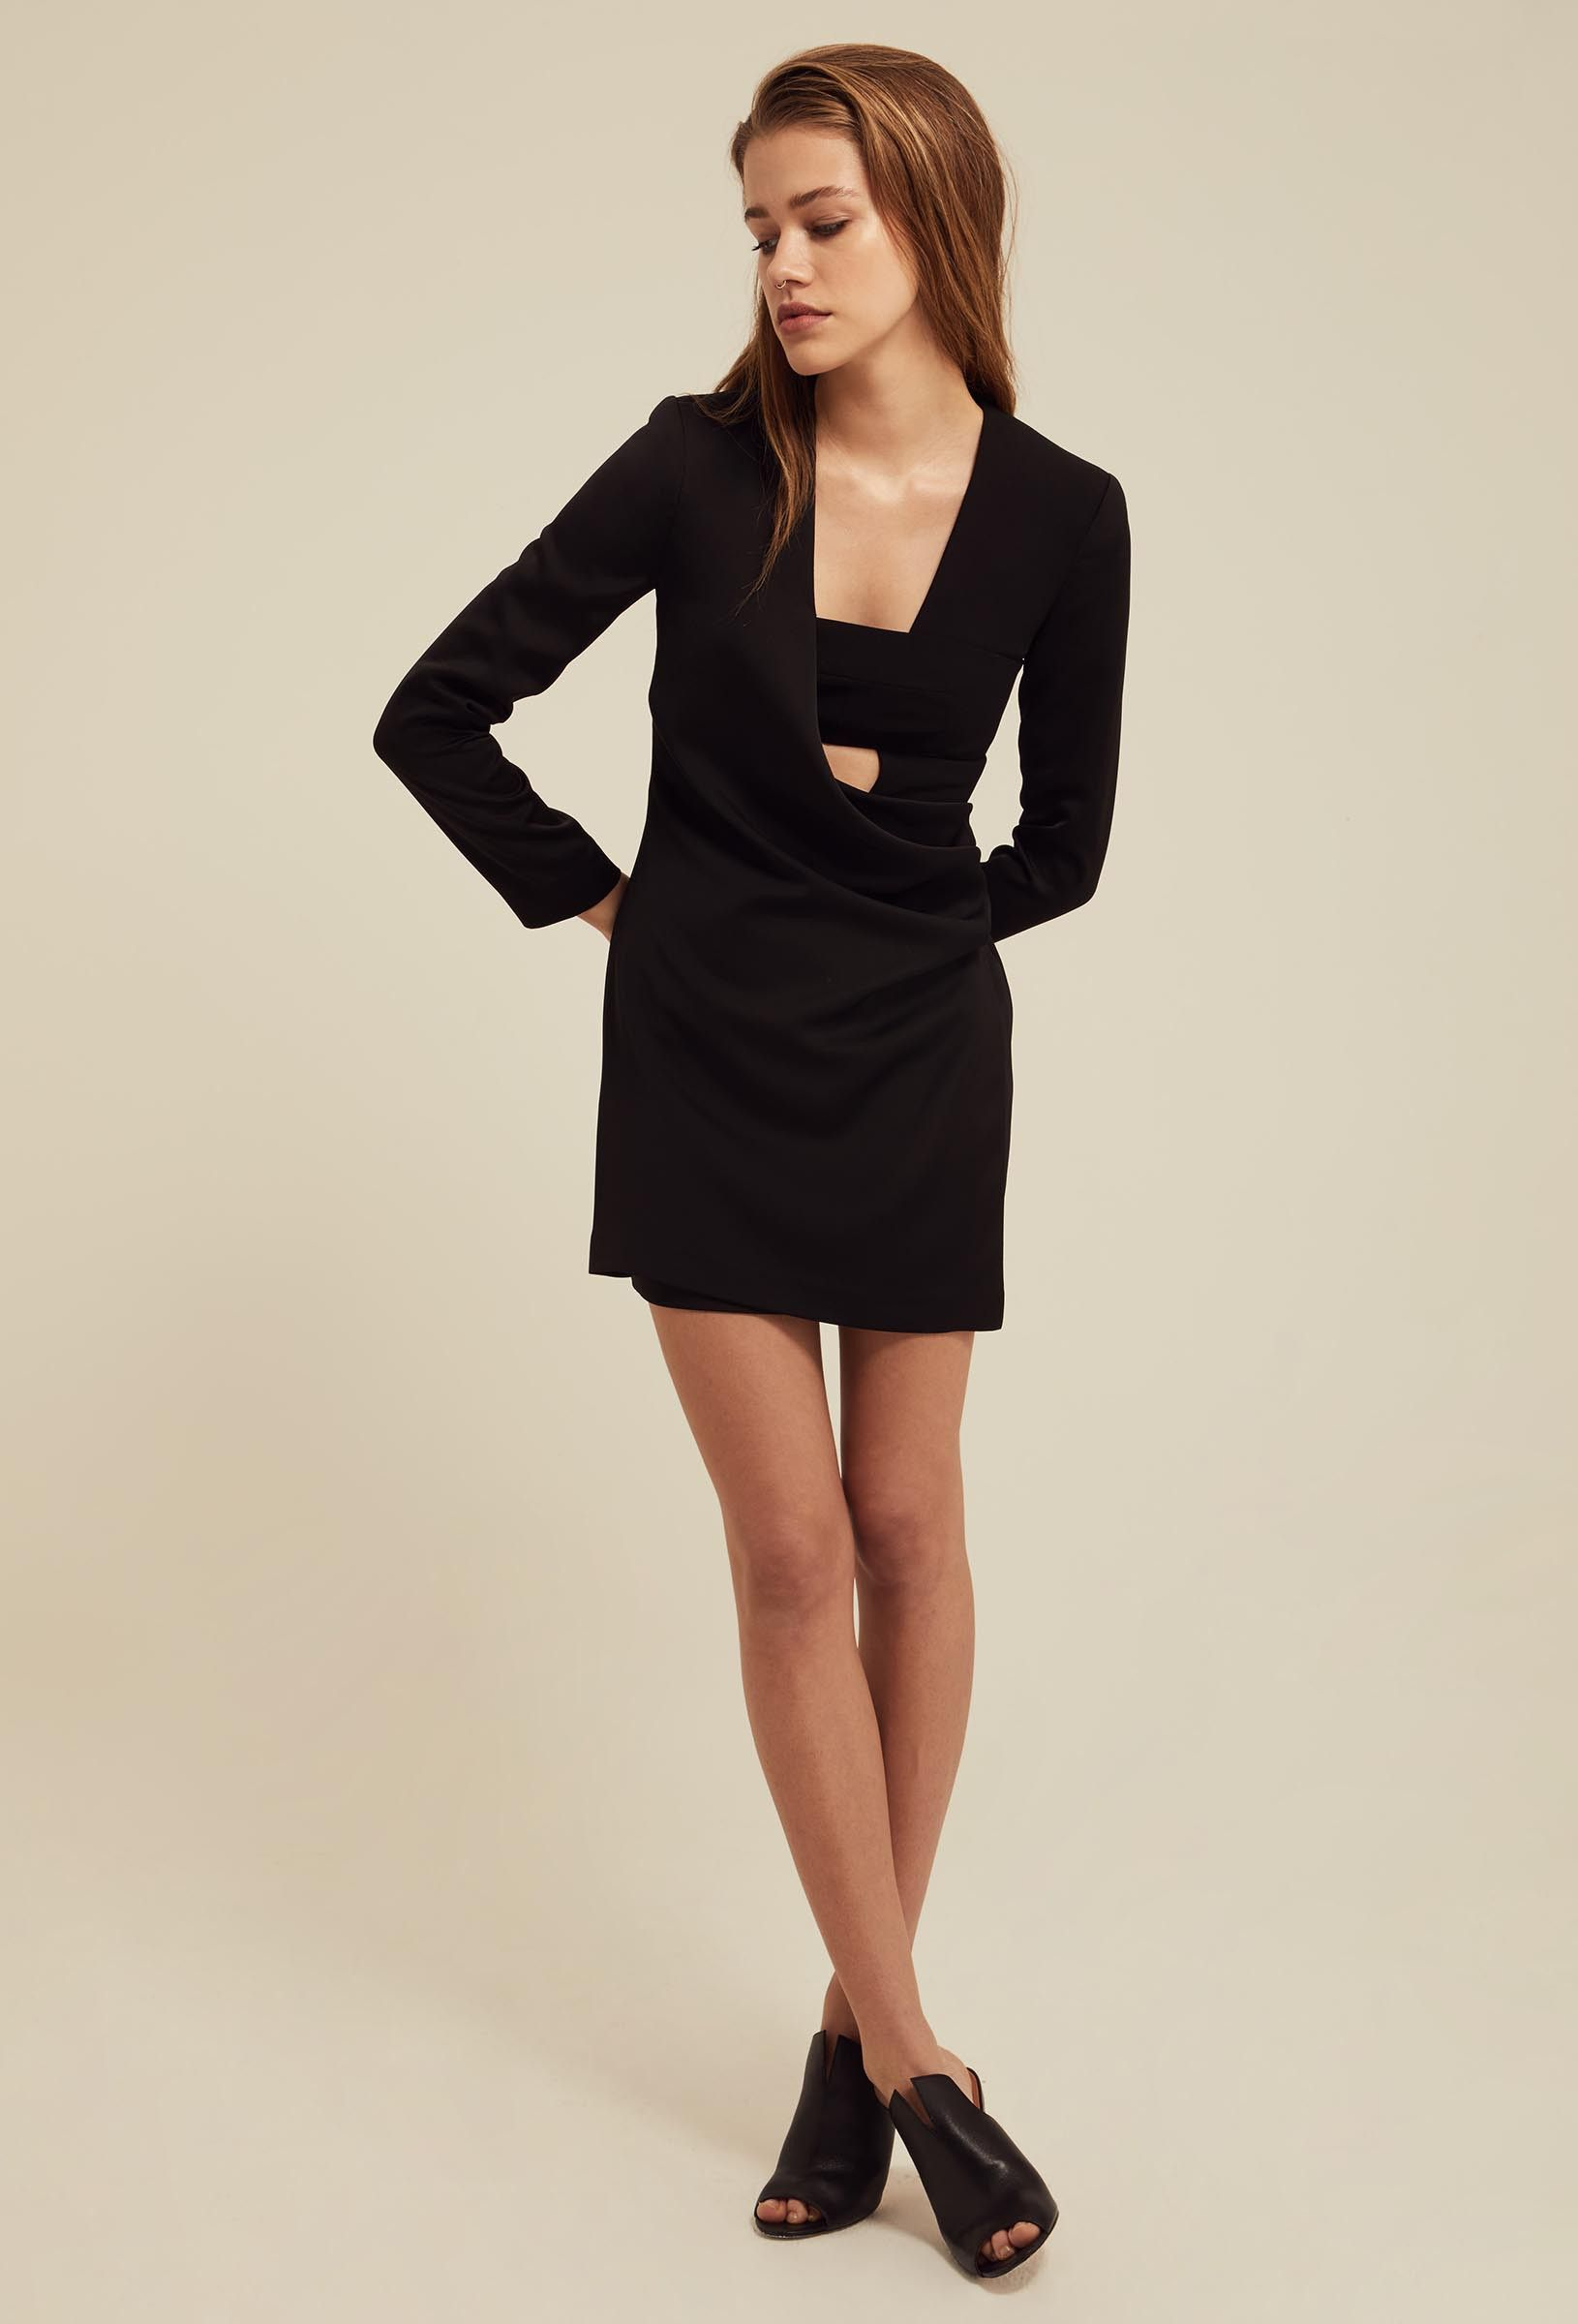 Image 5 of AQ/AQ Larah Jacket Style Mini Dress with Long Sleeves ...